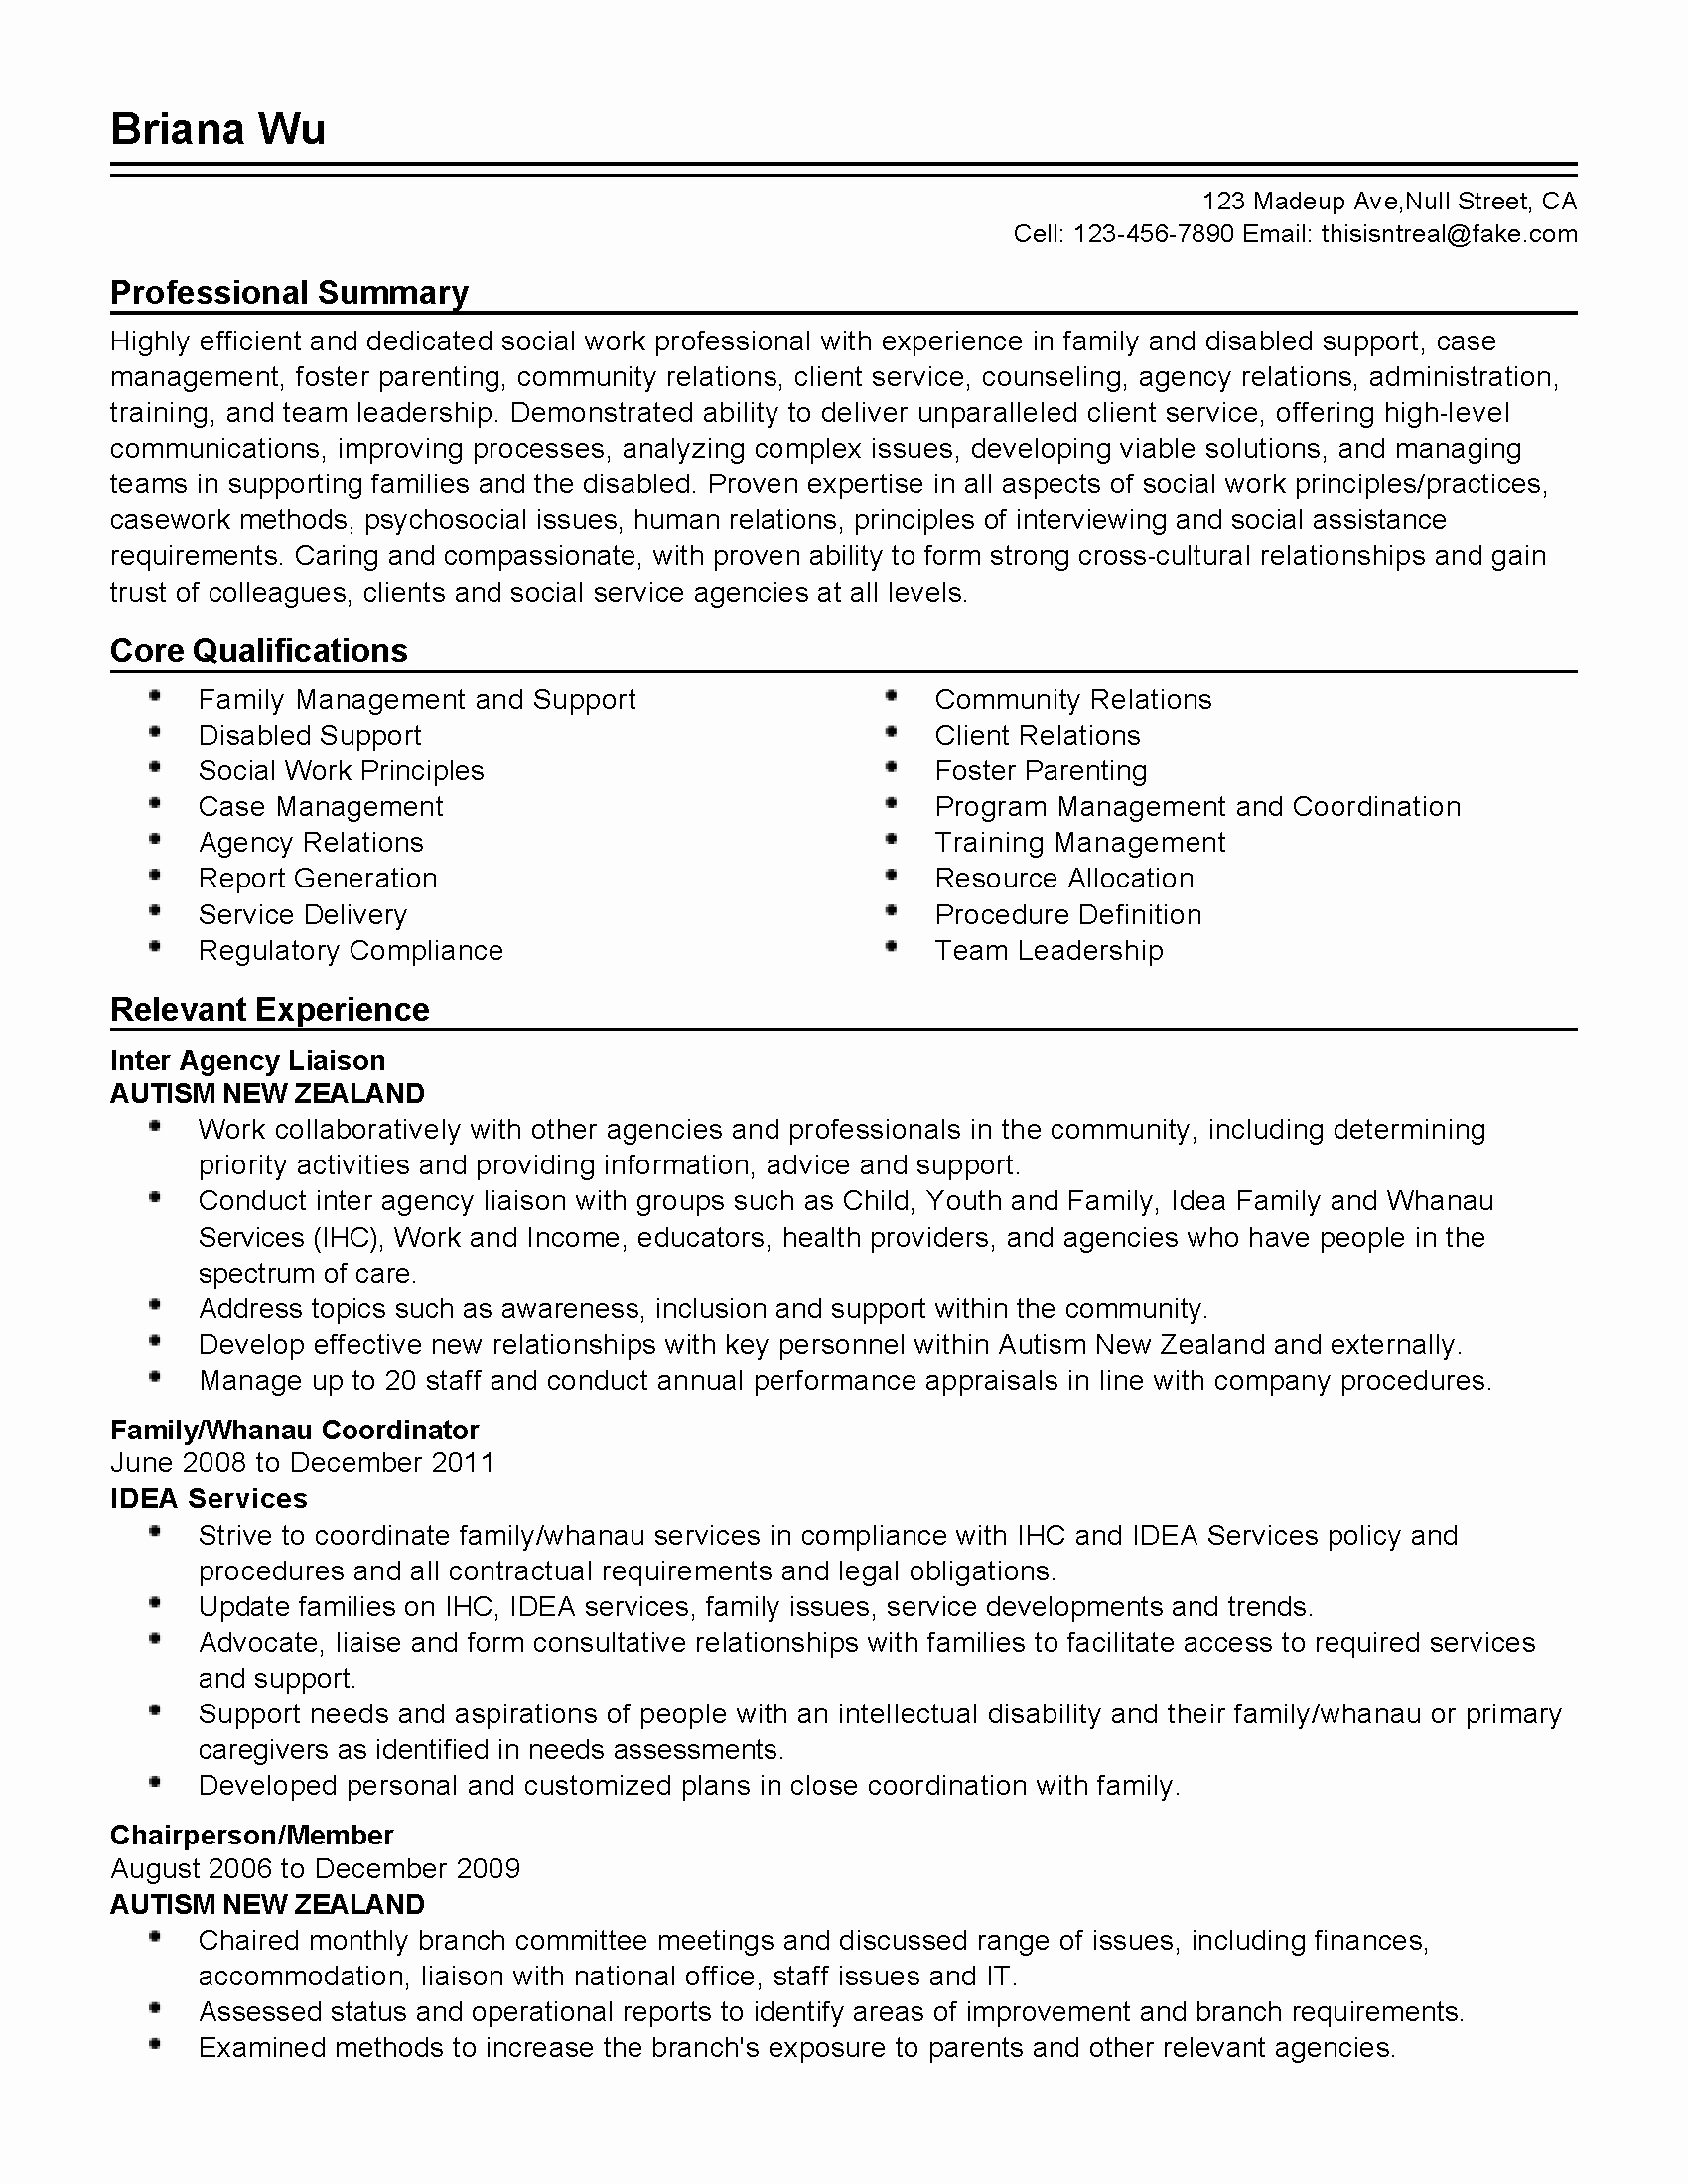 Professional social Work Professional Templates to